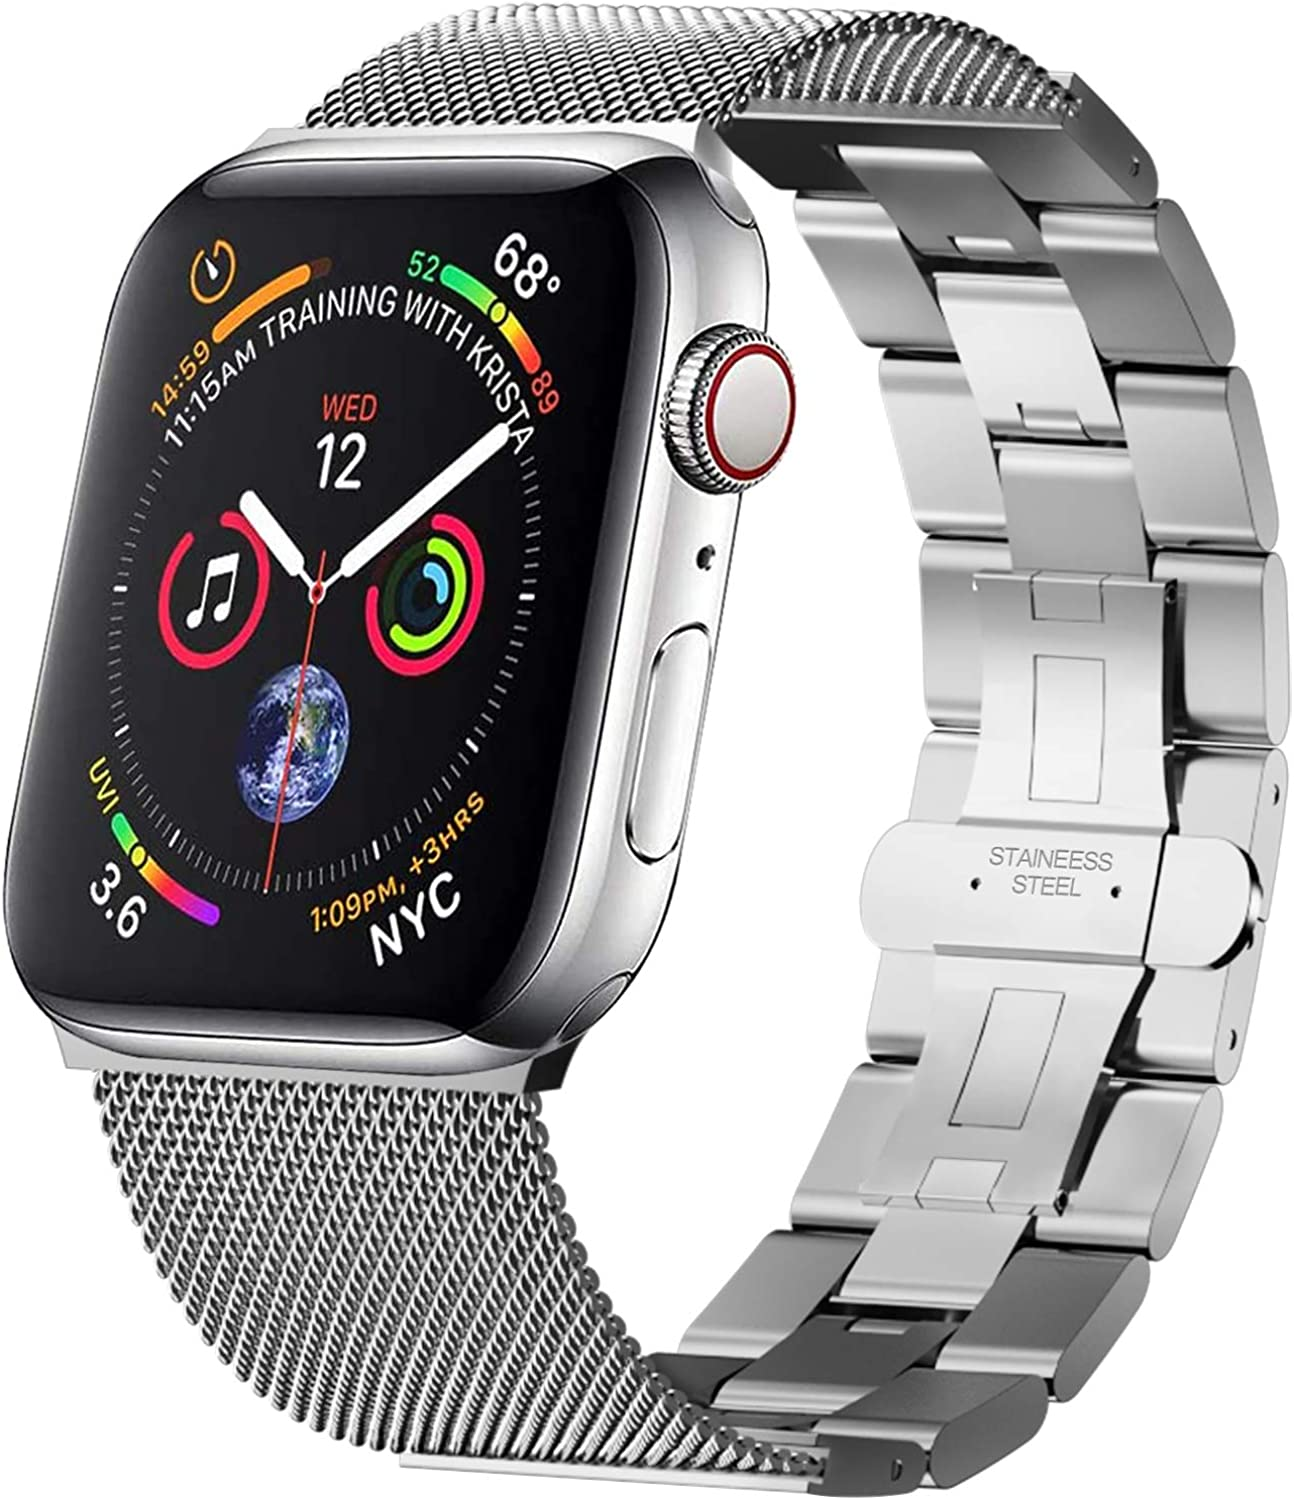 Aowemea Mesh + Links Design Butterfly Buckle Stainless Steel Band Compatible with Apple Watch Band iWatch Series 6 5 4 3 2 1 Women Men Replacement Strap Wristband Bracelet